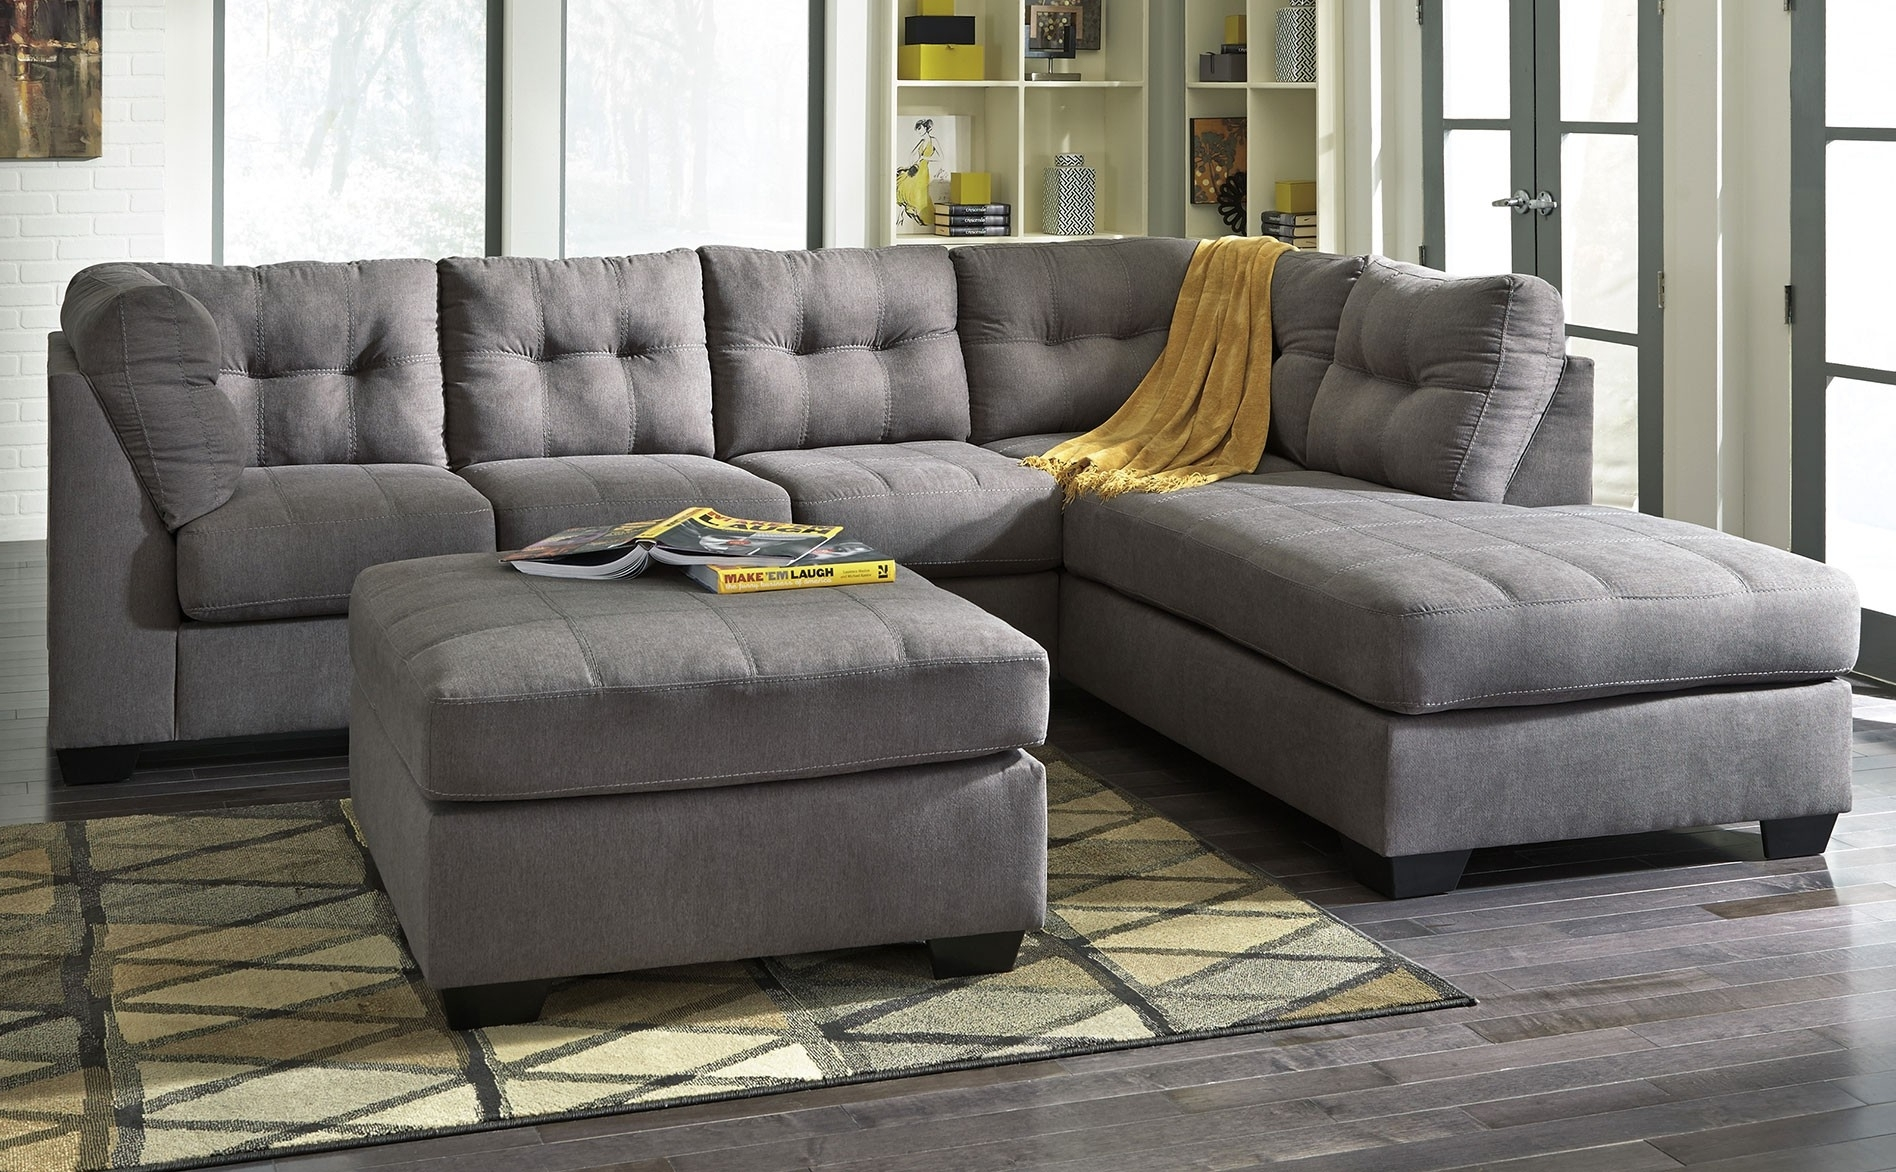 Preferred Sofa : Leather Couch Under 500 Sectionals Under 400 Room Couch Throughout Sectional Sofas Under  (View 10 of 15)